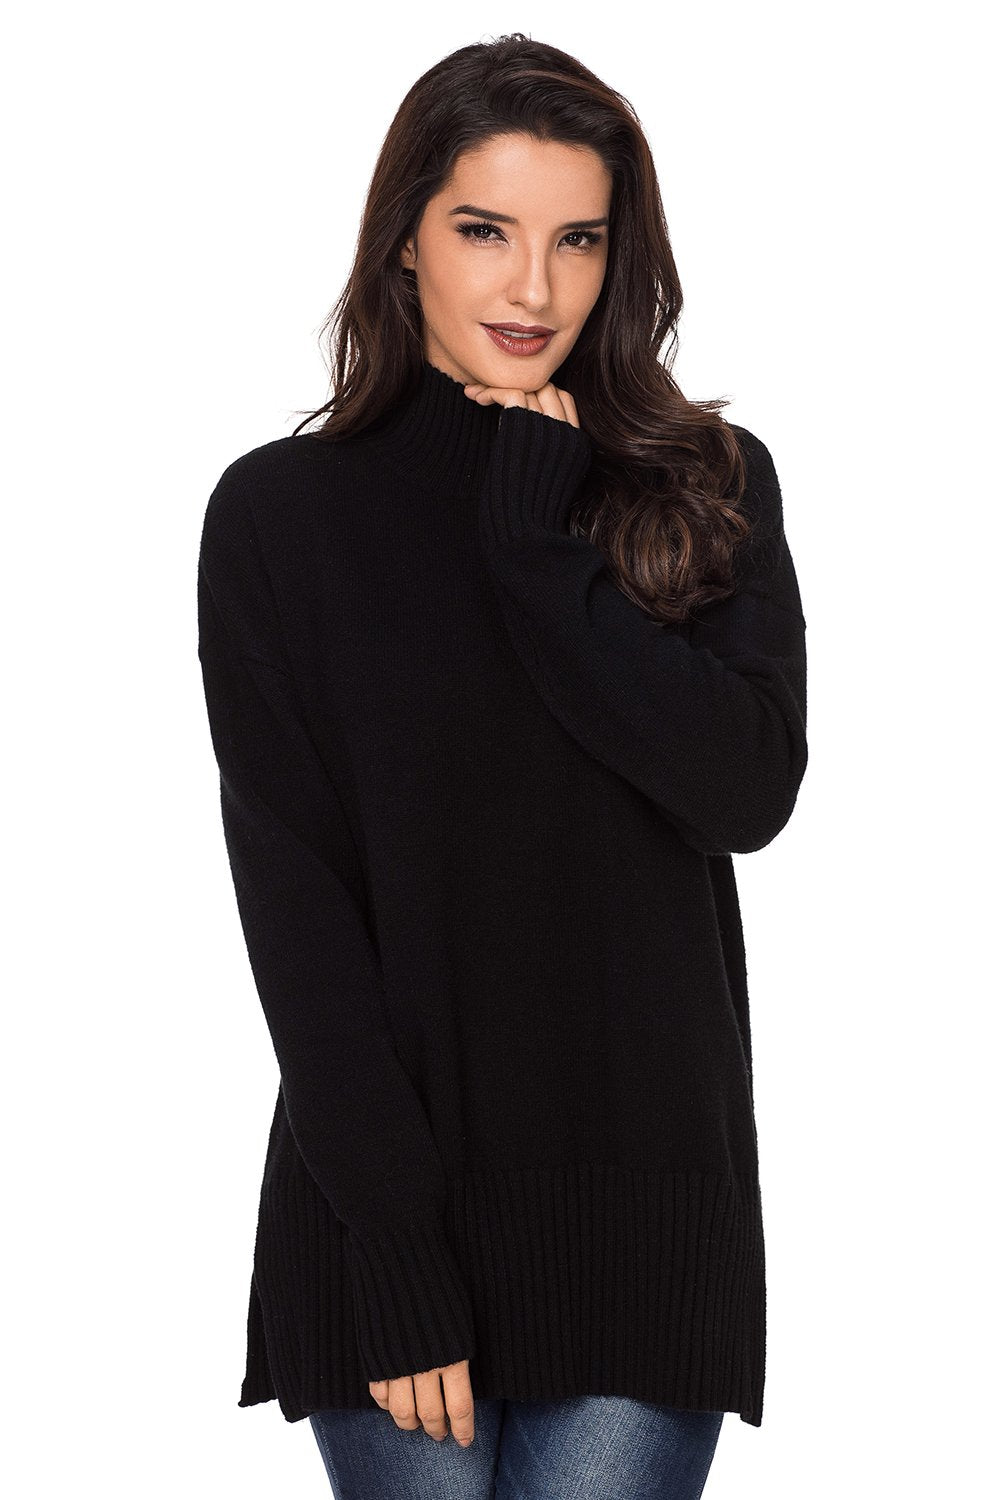 Black Turn-up Sleeve Turtle Neck Sweater-Outerwear, Sweaters & Cardigans-Azura Exchange